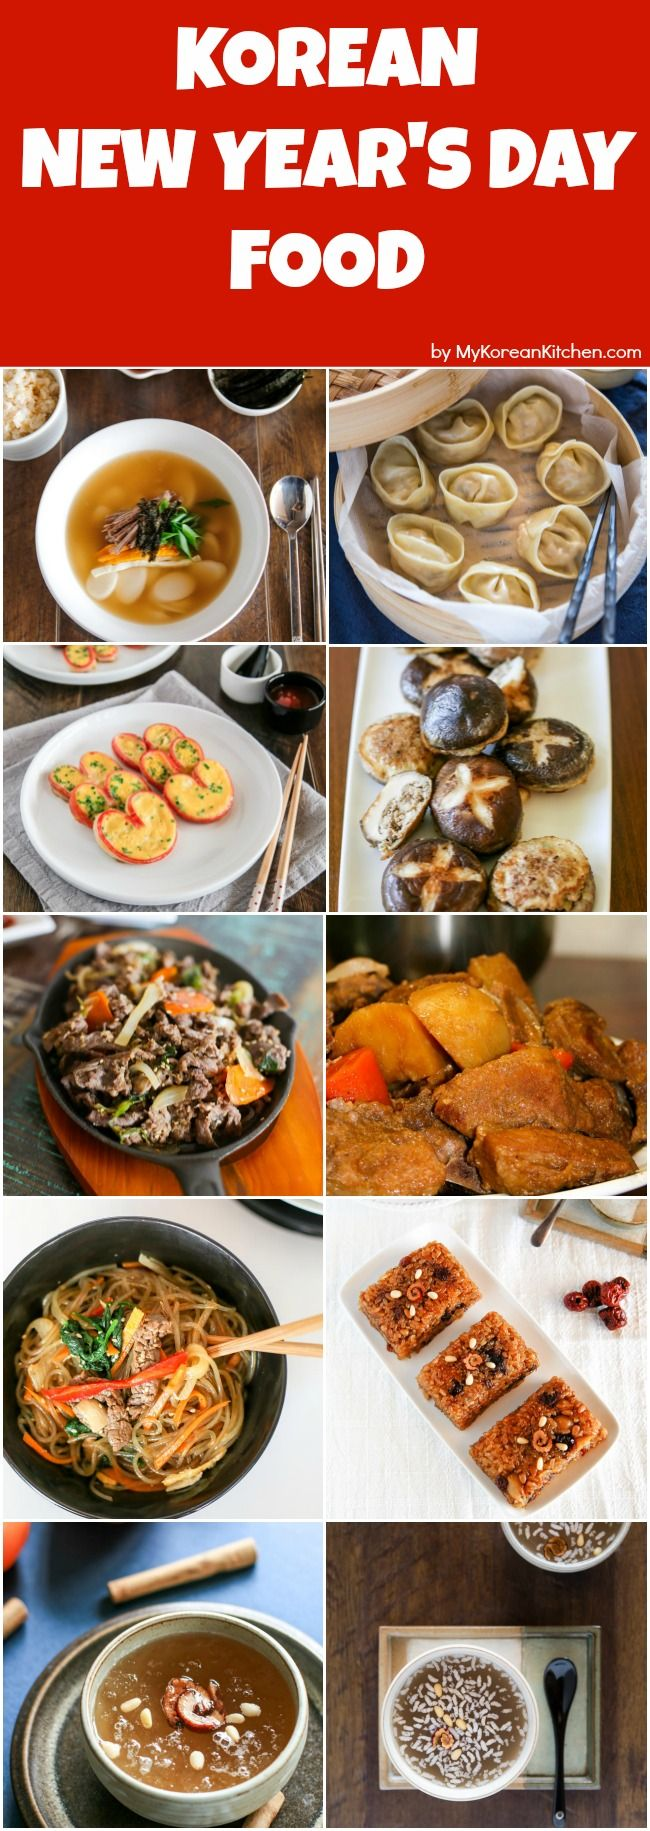 Let S Celebrate What To Cook And Eat On Korean New Year S Day Korean New Year S Day Food Round Up 10 Korean New Year Fo Food New Years Day Meal Korean Food